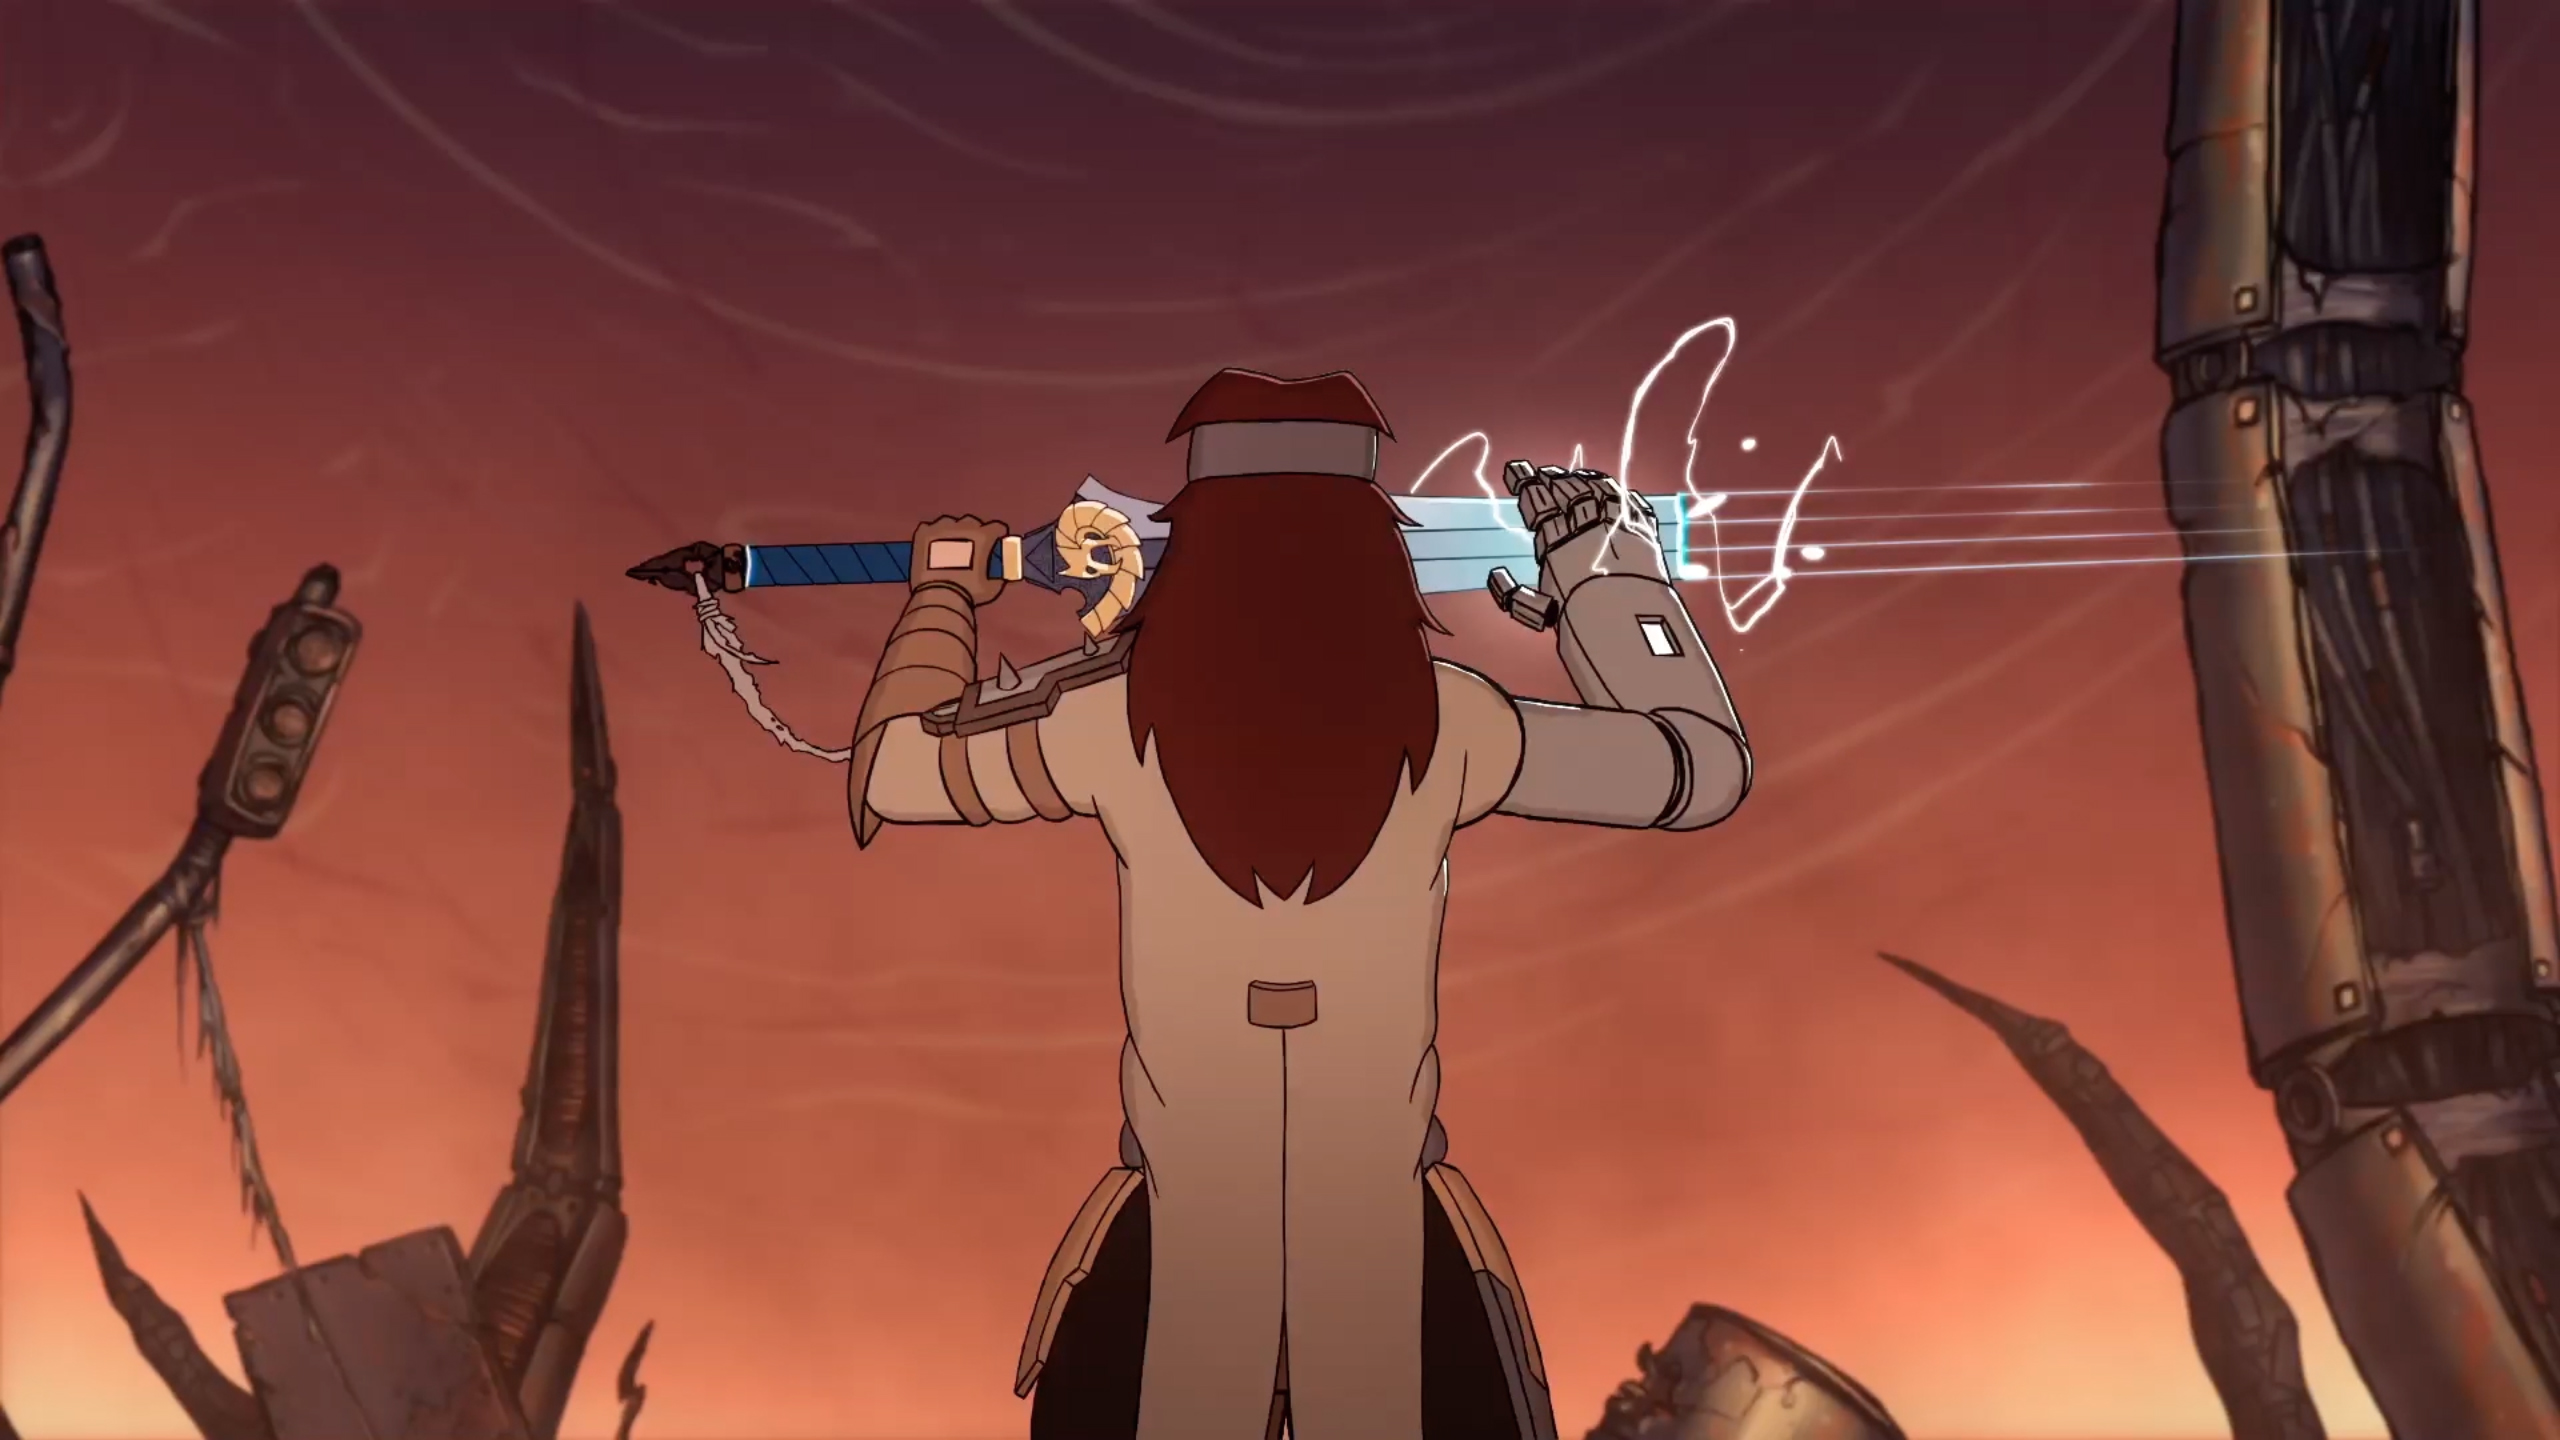 Horae an ambitious RPG full of epic monsters and legendary stories